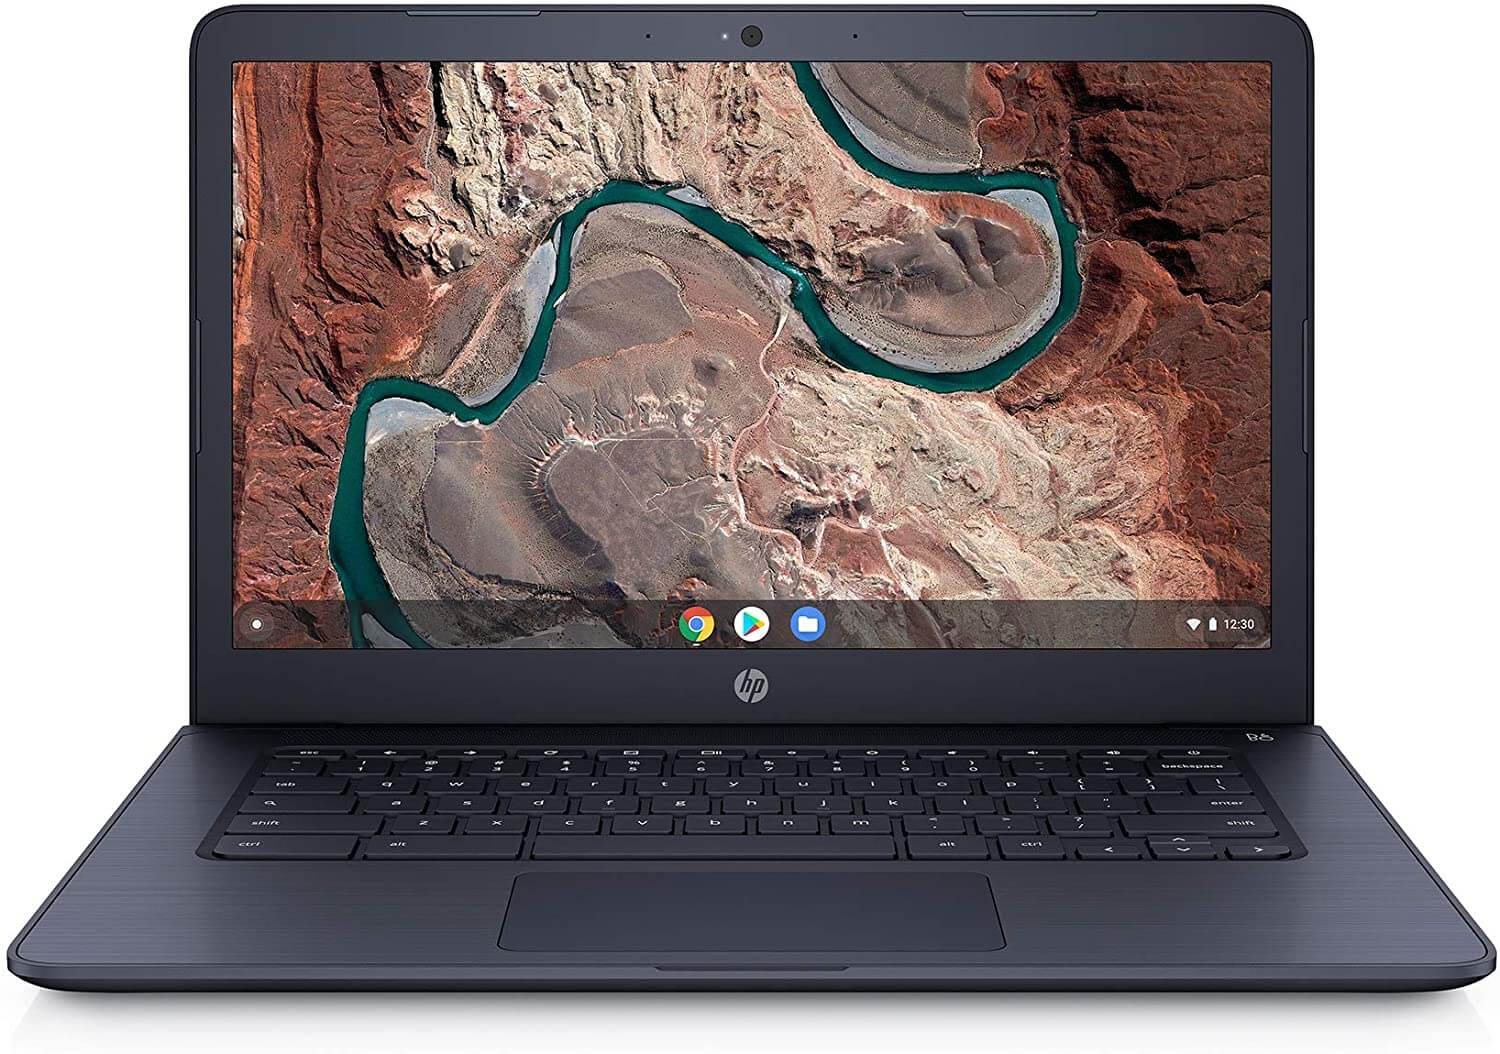 Best Deals on Chromebooks - HP Chromebook 14